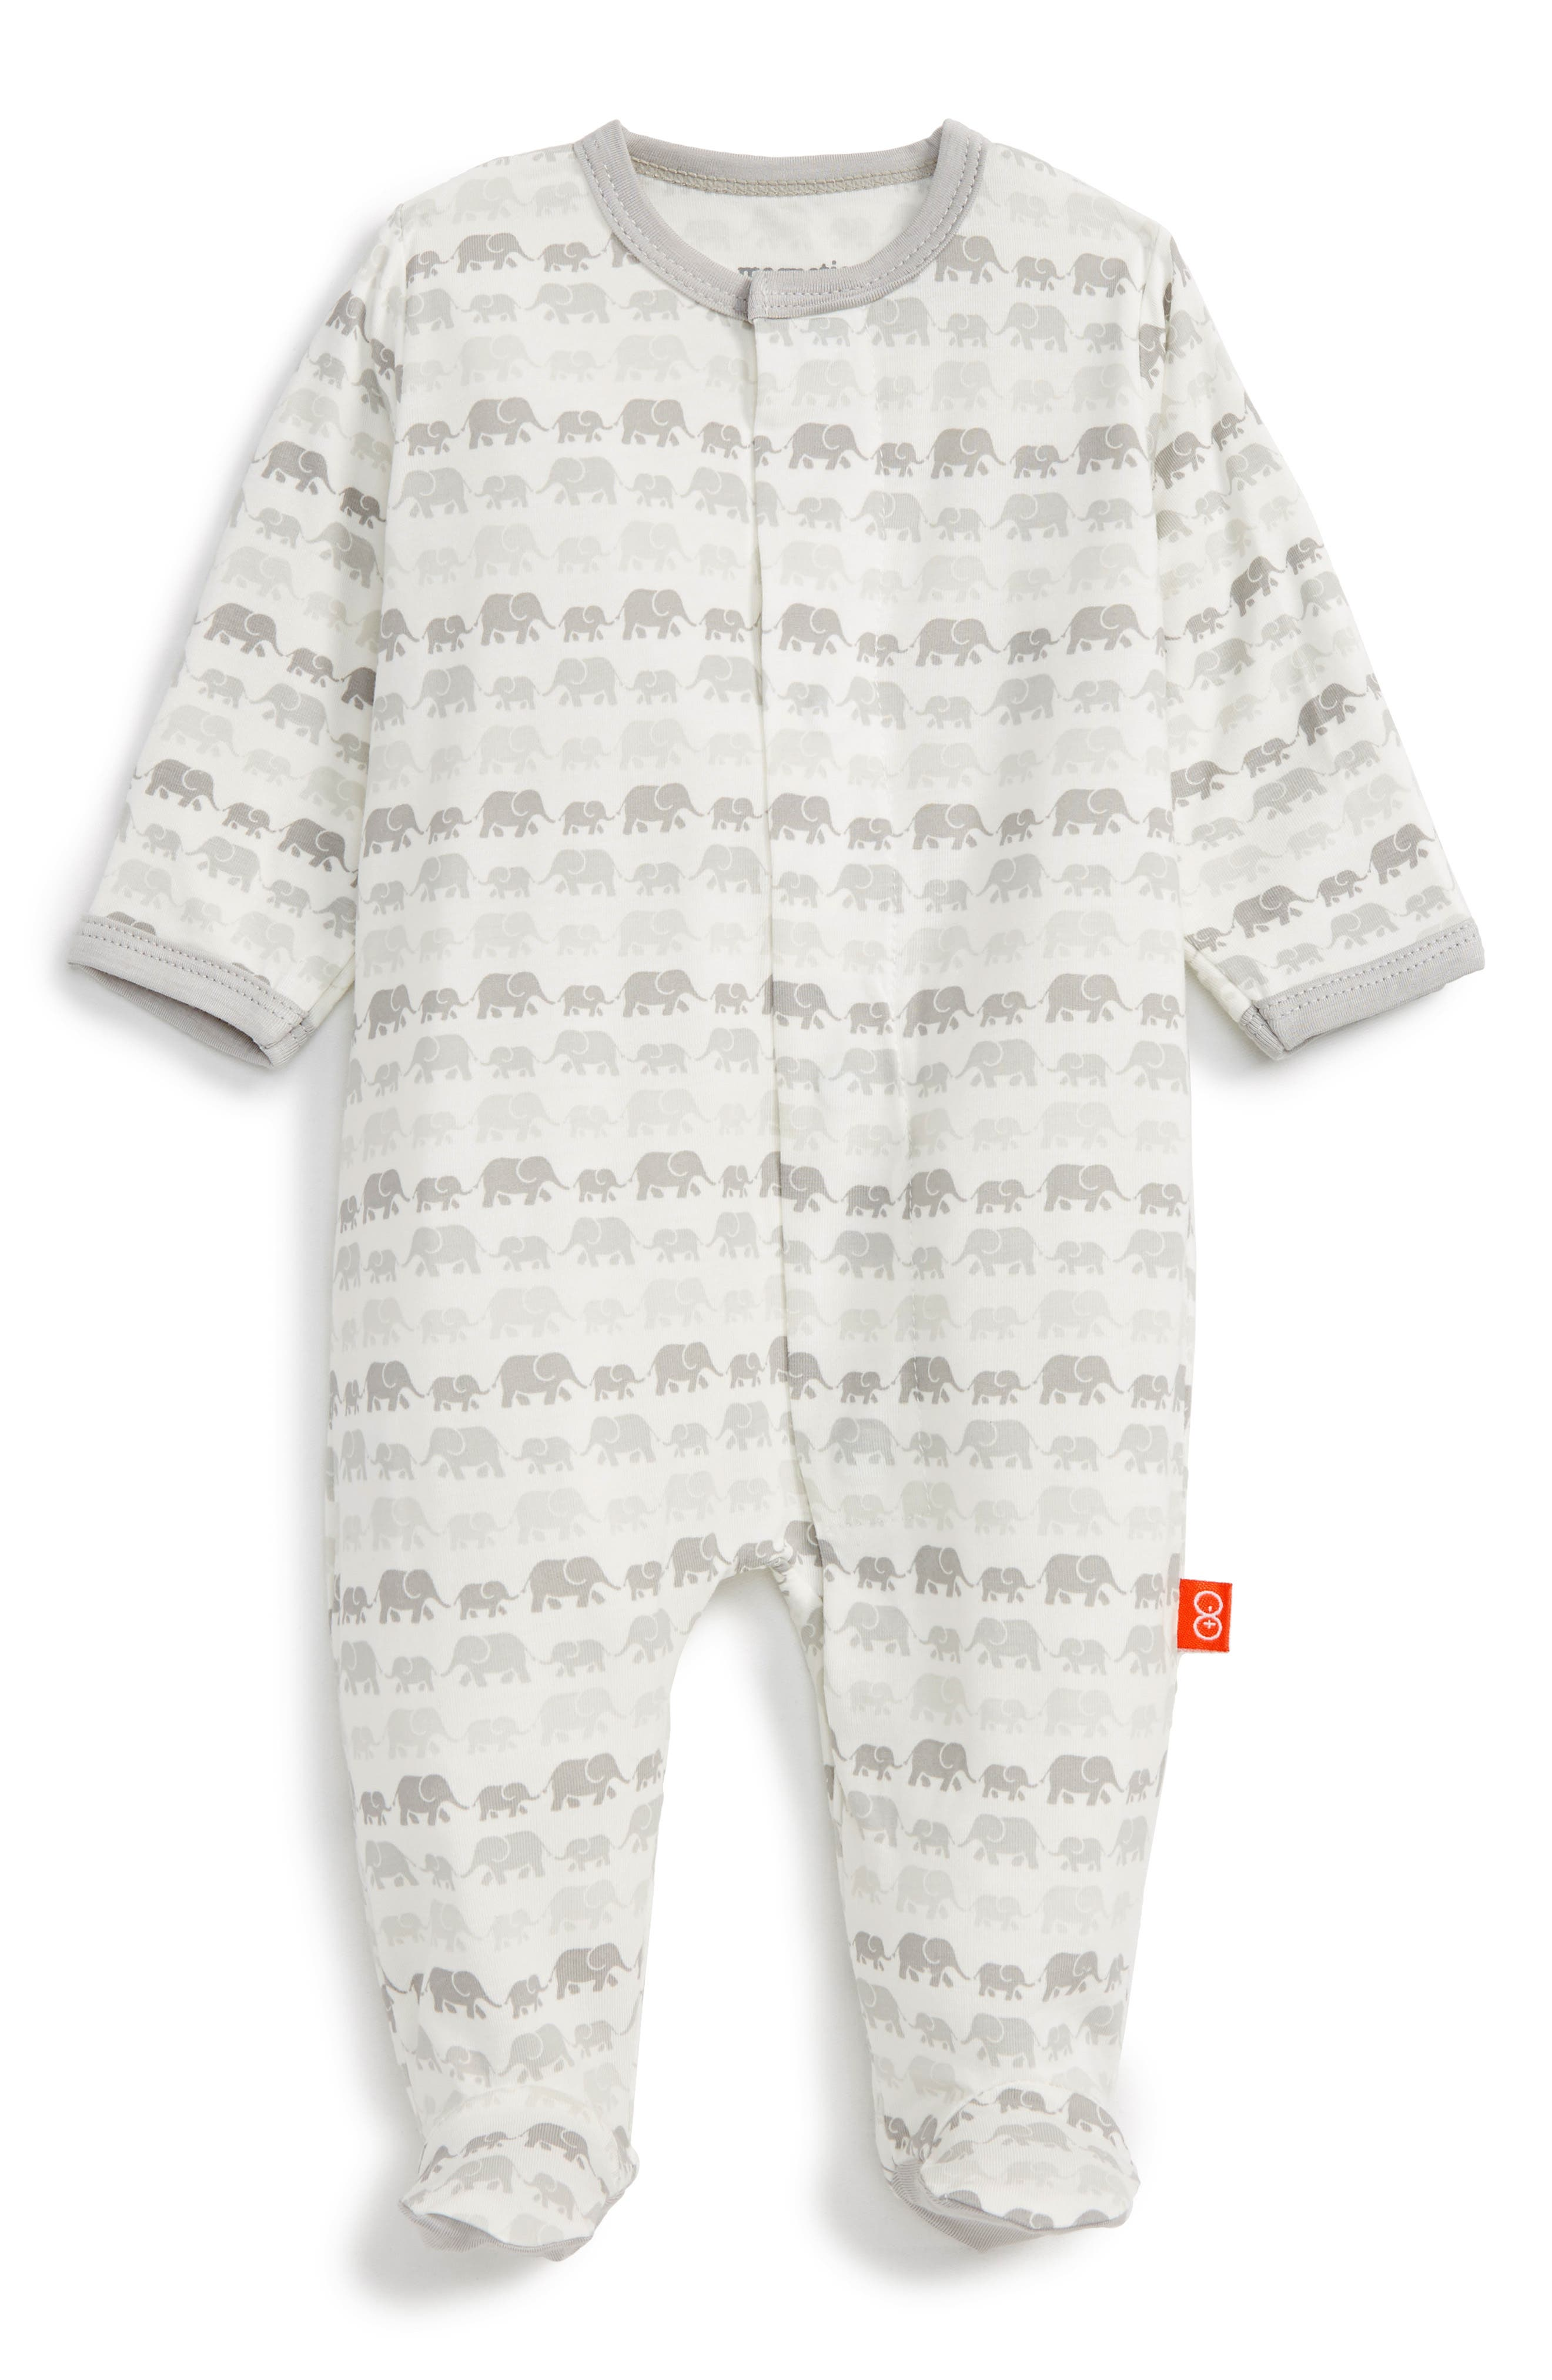 Main Image - Magnetic Me Fitted One-Piece Pajamas (Baby Girls)